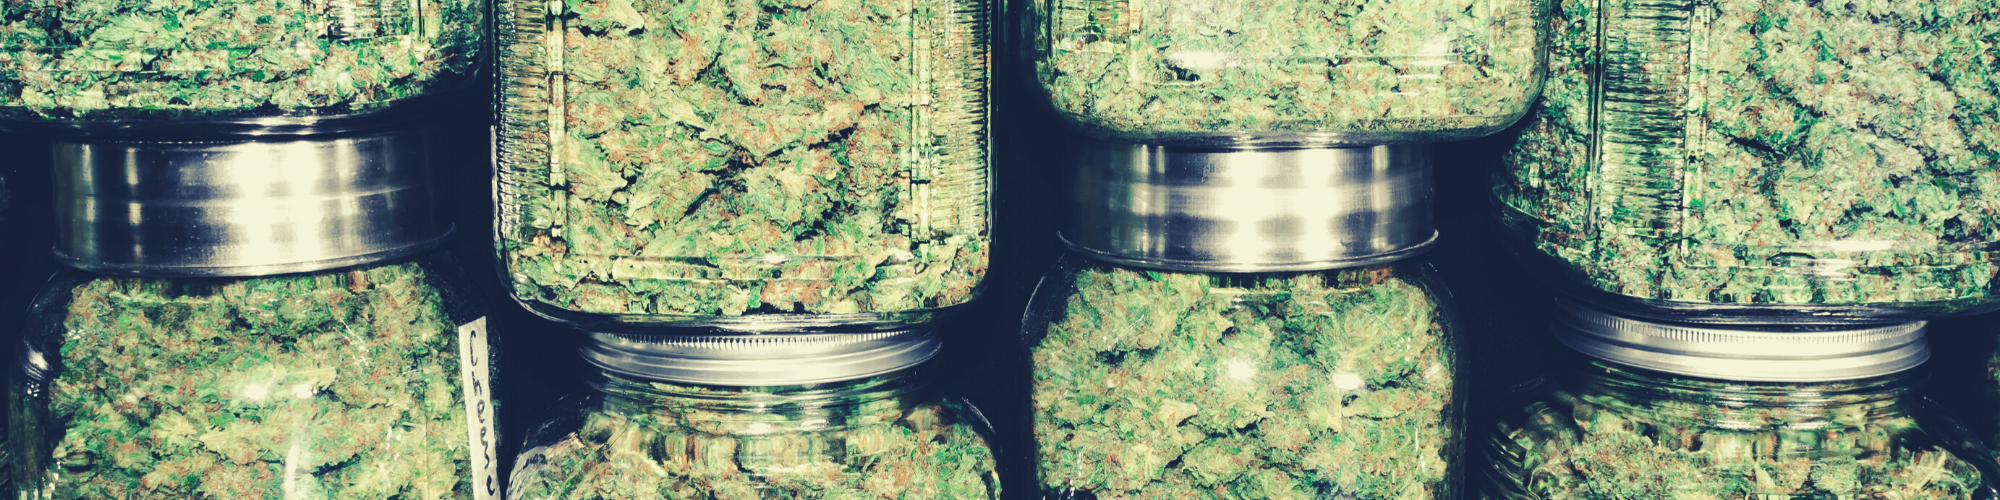 marijuana in glass jars